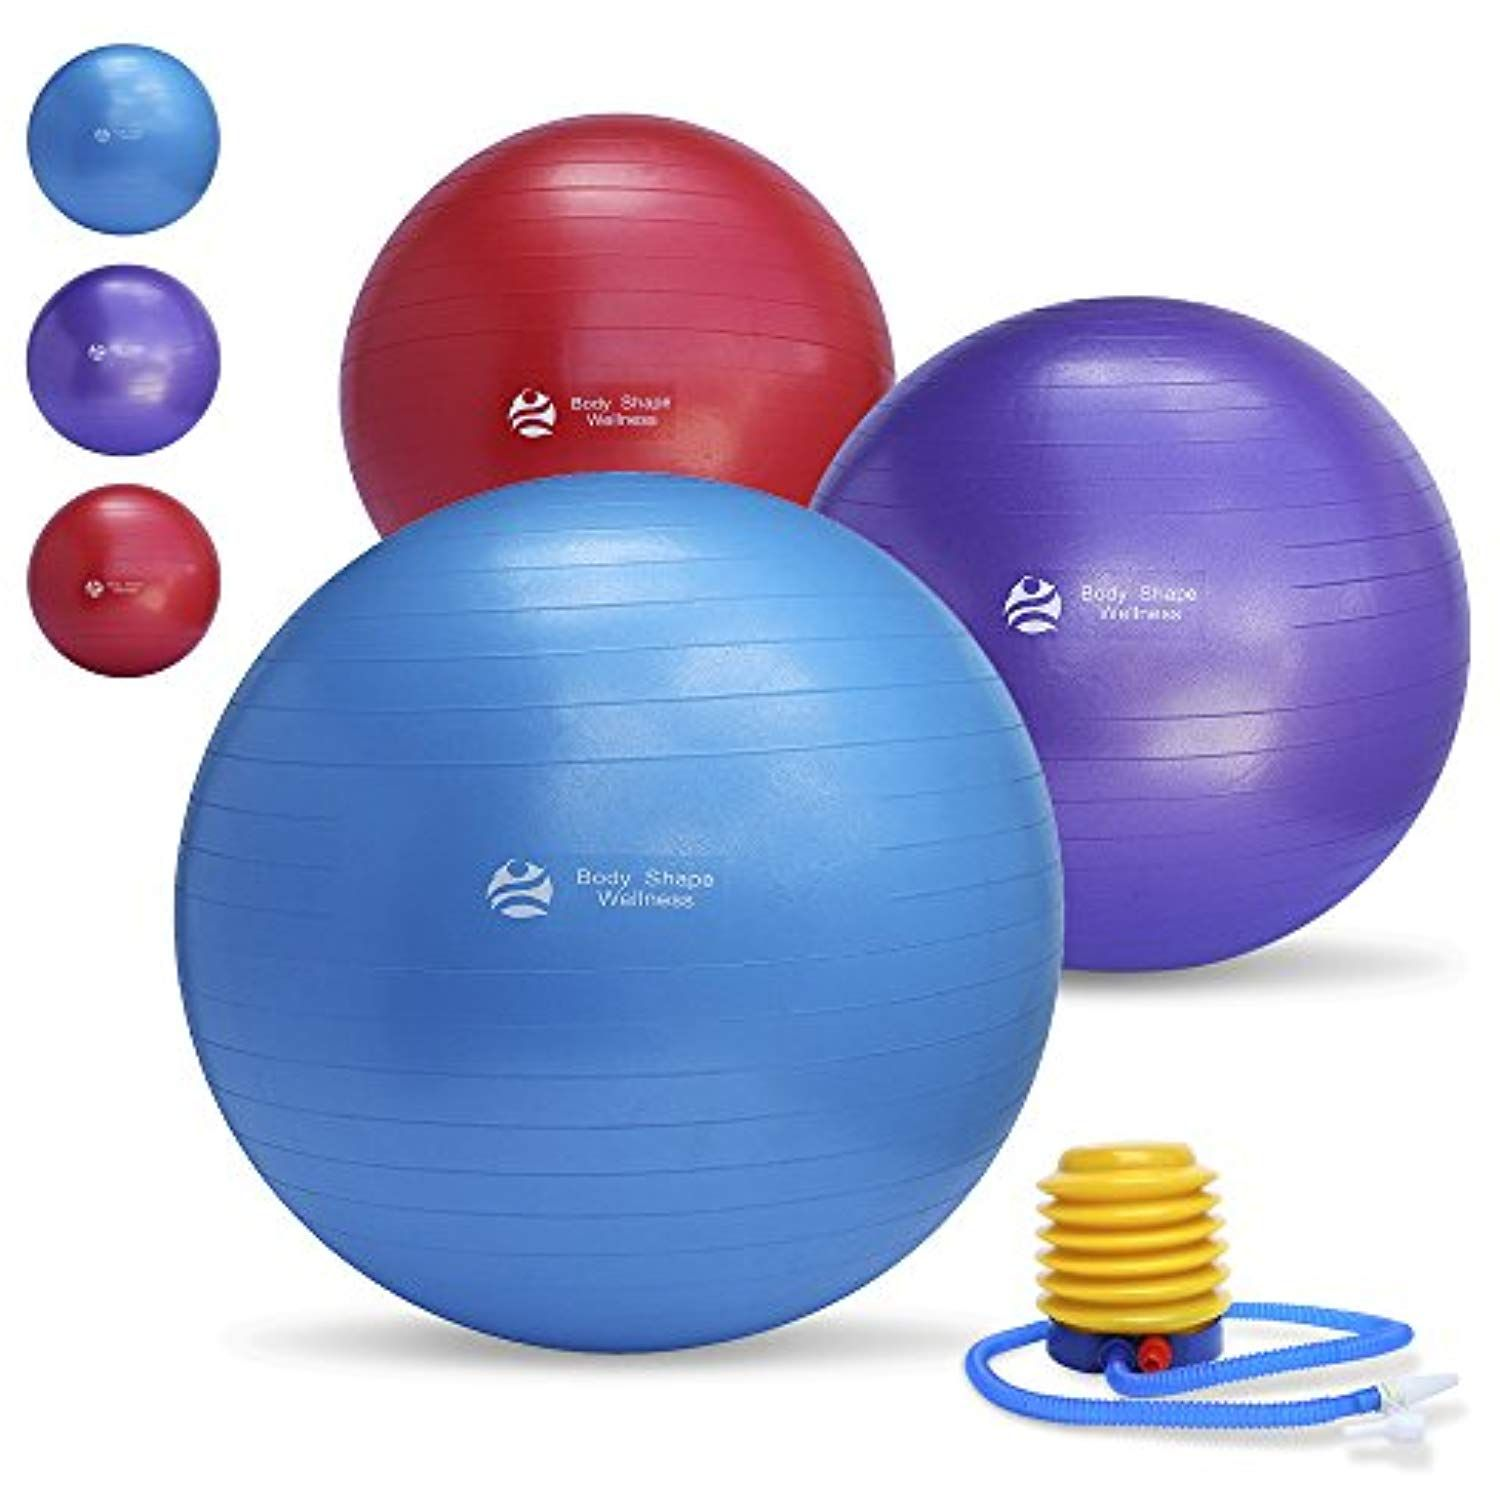 bf3728224ef4bc0778458945af9f7b6a - How Do I Know What Size Stability Ball To Get